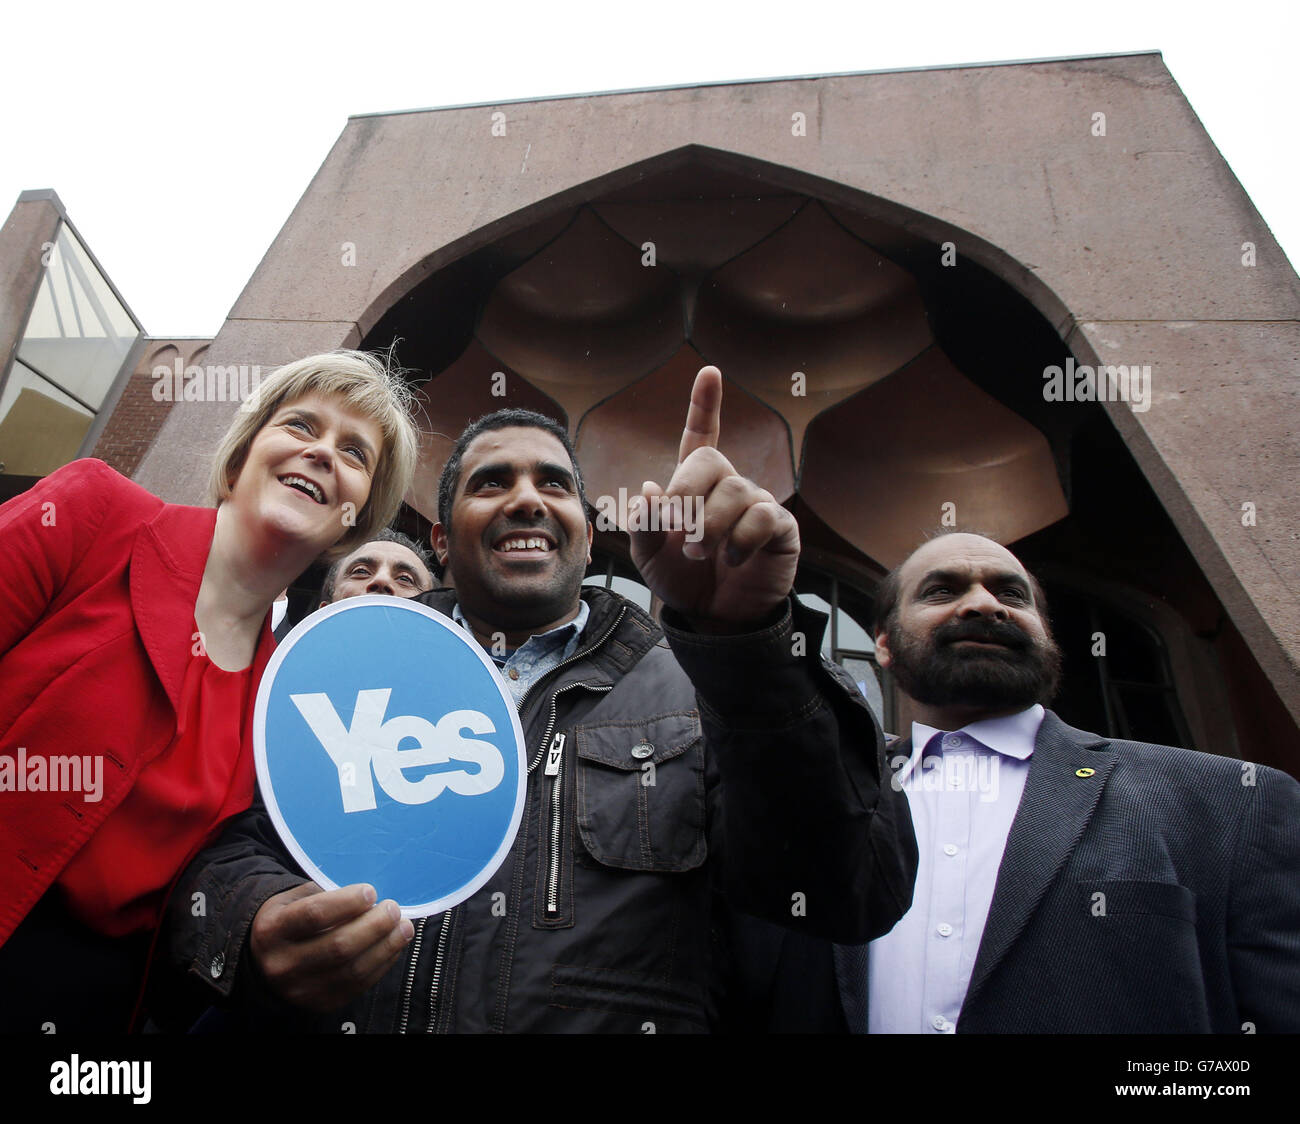 Scottish independence referendum - Stock Image